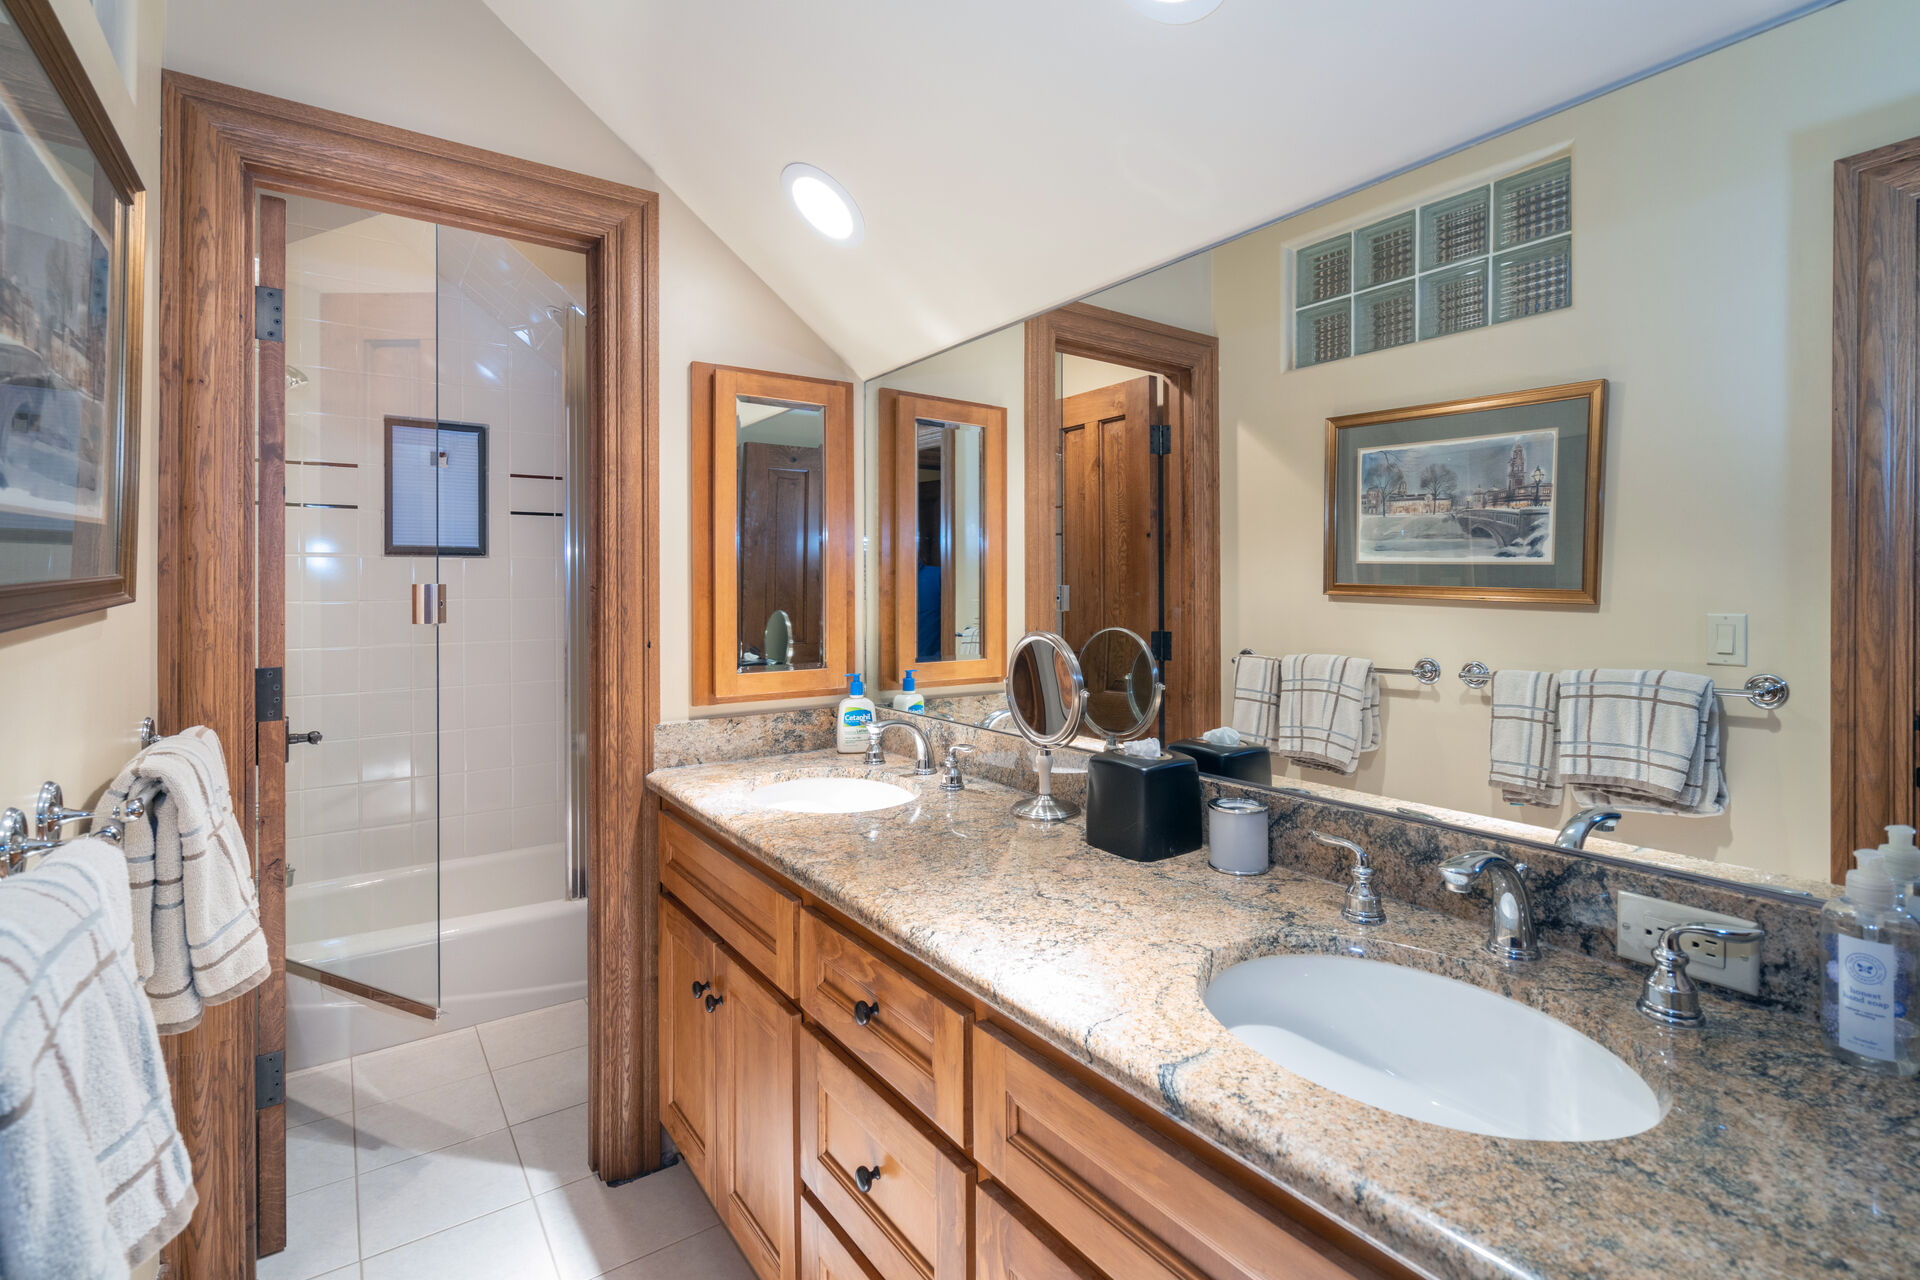 Double vanity sinks with separate shower room in this bathroom.